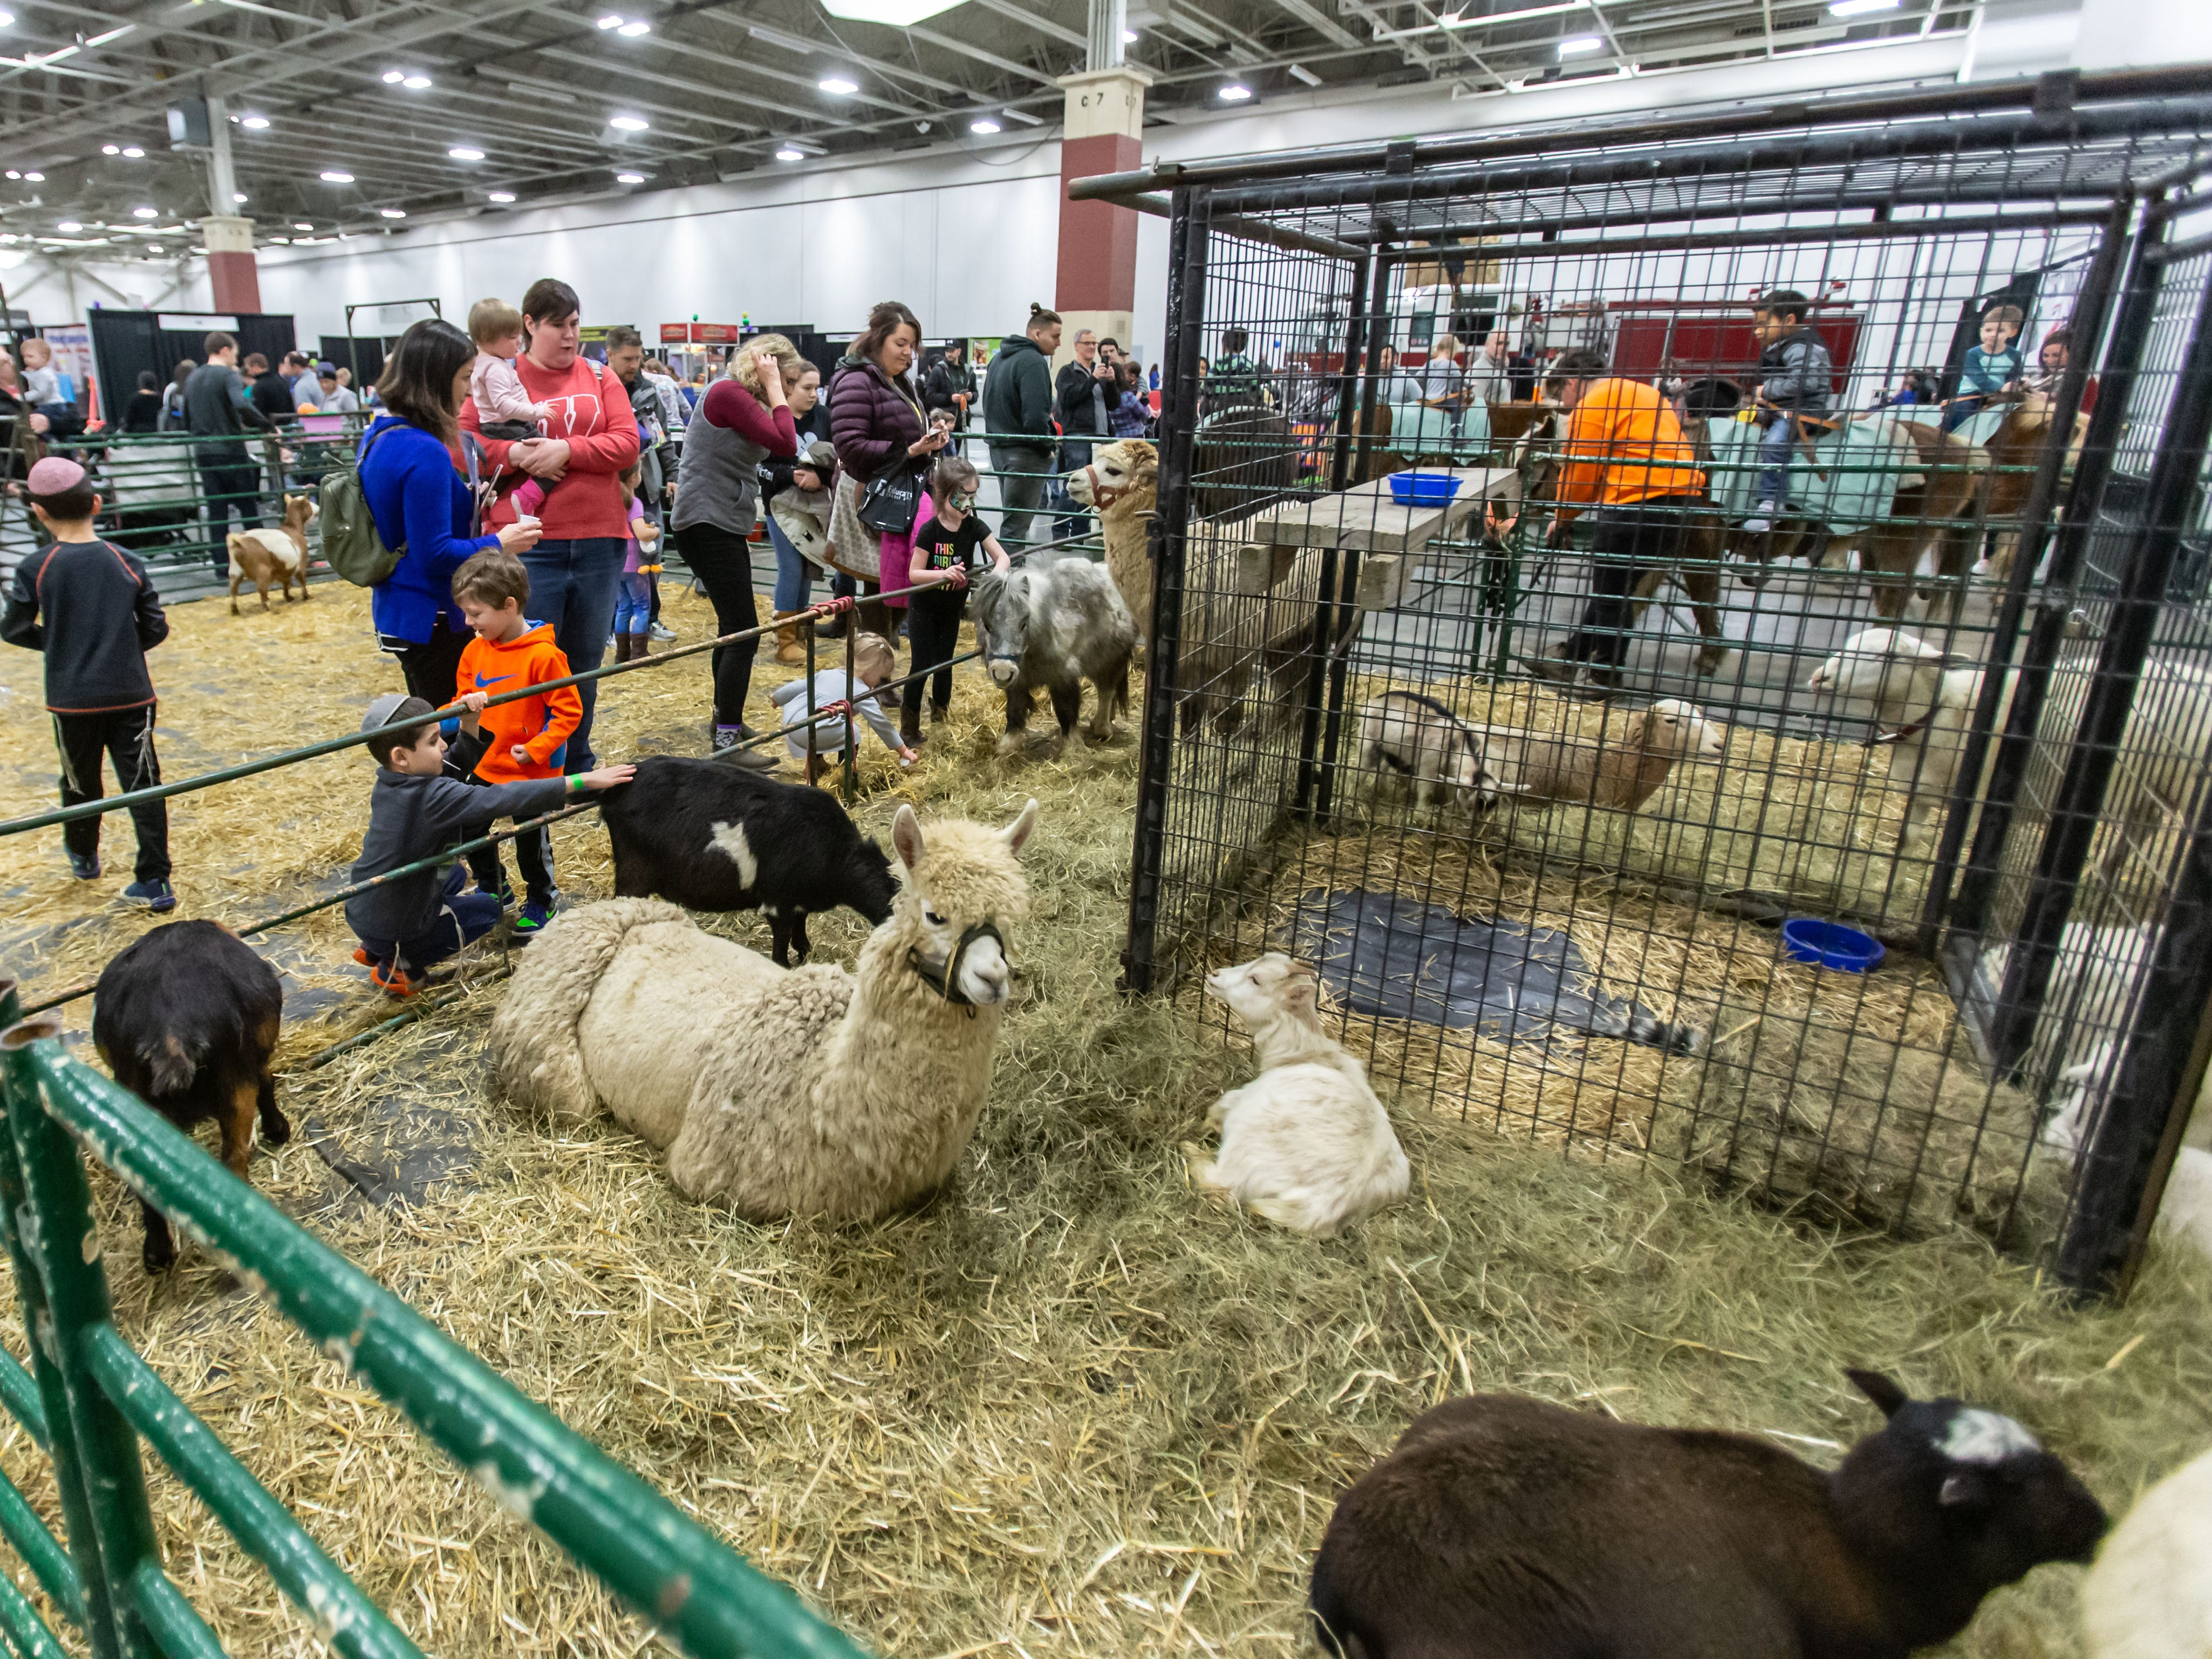 Visitors are greeted by a variety of animals at Jo Don Farms Petting Zoo during the Milwaukee Kids Expo at State Fair Park in West Allis on Sunday, Feb. 10, 2019. The two-day expo featured bounce houses, a petting zoo, a rock climbing wall, pony rides, caricature paintings, a maze challenge and much more.